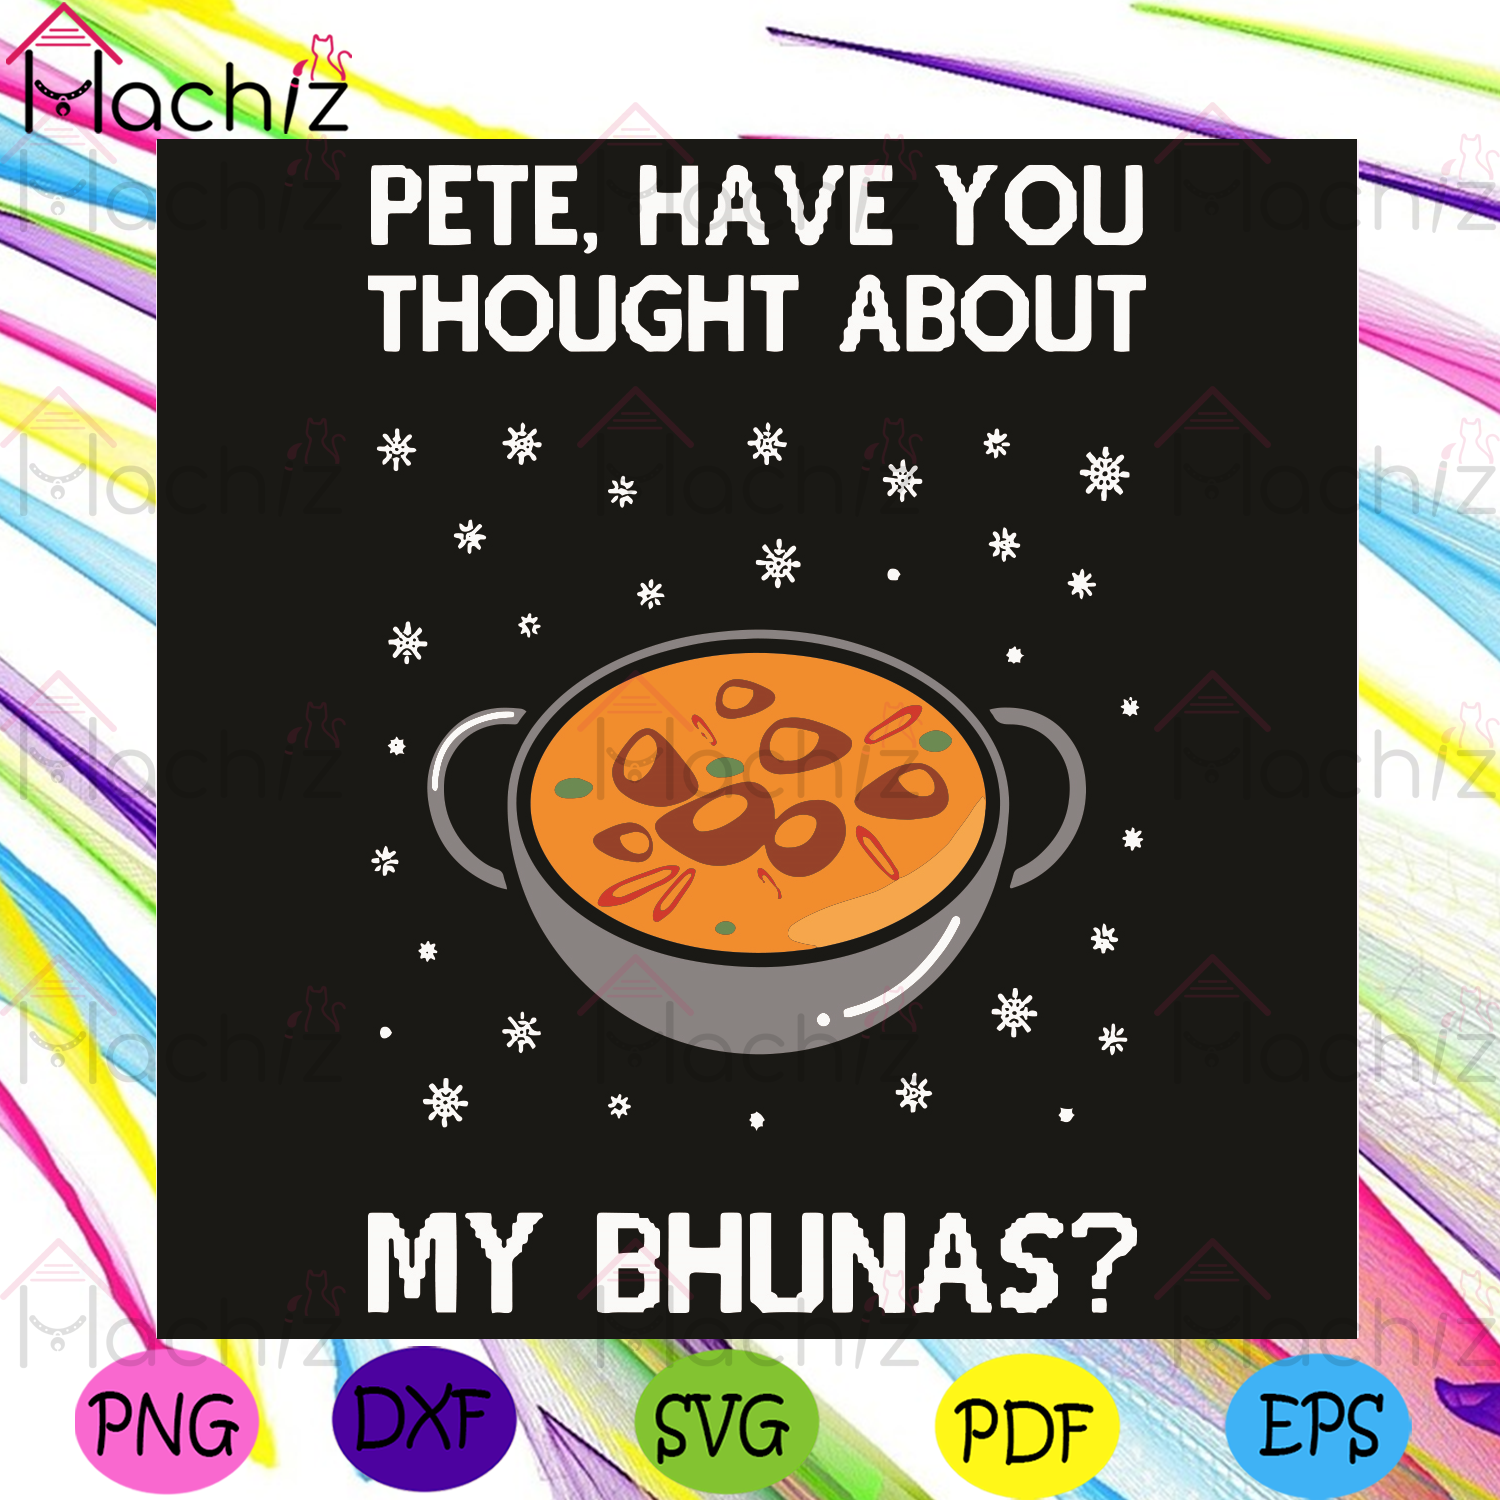 Peter Have You Thought About My Bhunas Svg, Trending Svg, Peter Have You Thought About My Bhunas Svg, Snow Svg, Soup Svg, Bhunas Svg, Quote Svg, Funny Question Gift, Funny Question Shirt, Svg Cricut